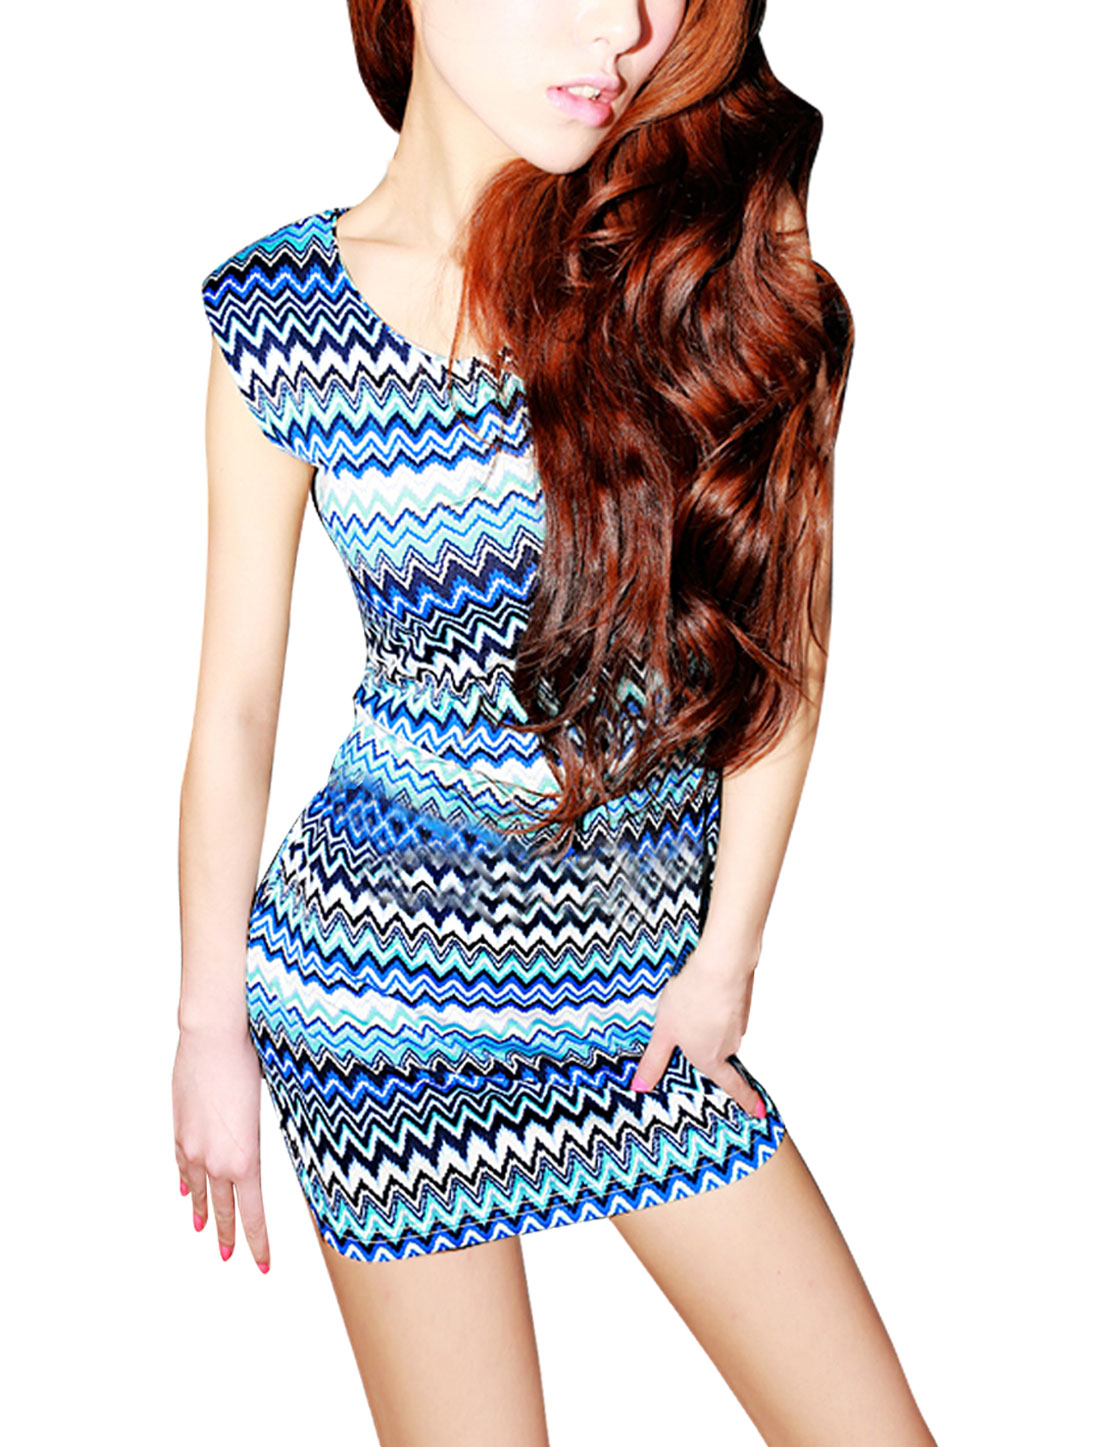 Women Chic Scoop Neck Padded Shoulder Design Blue Aqua Mini Dress XL